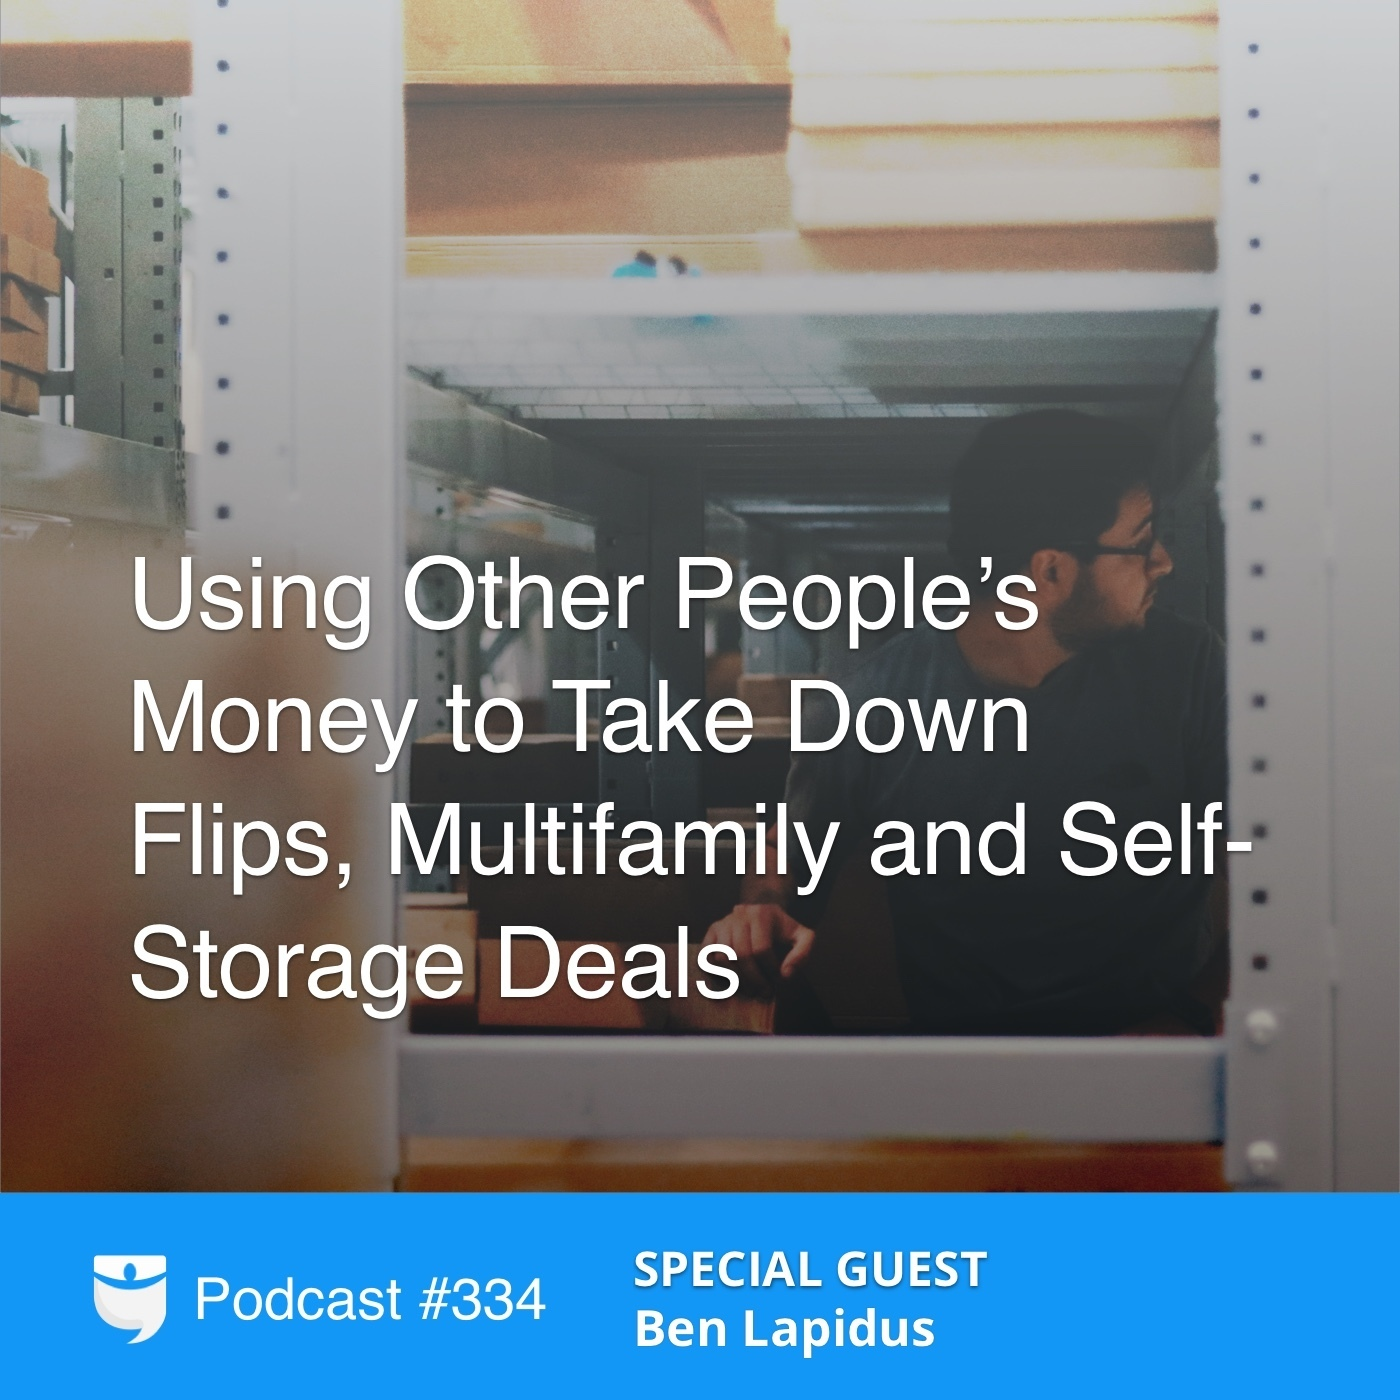 #334: Using Other People's Money to Take Down Flips, Multifamily and Self-Storage Deals with Ben Lapidus